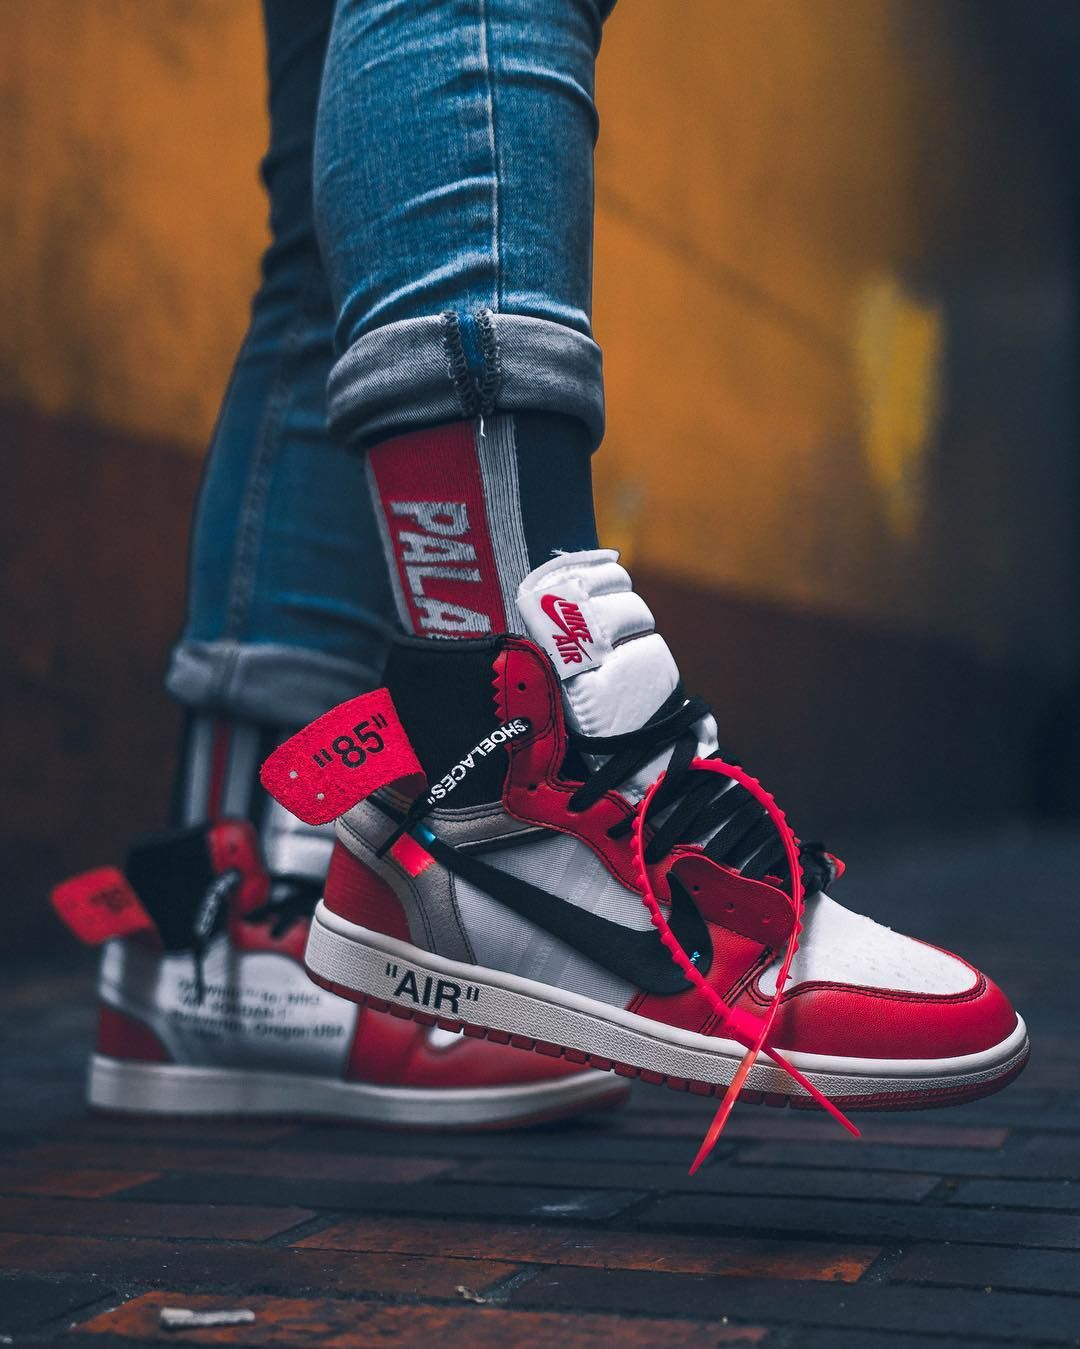 0db09a387ab OFF-WHITE x Air Jordan 1 | Clothing en 2019 | Zapatillas hombre moda ...